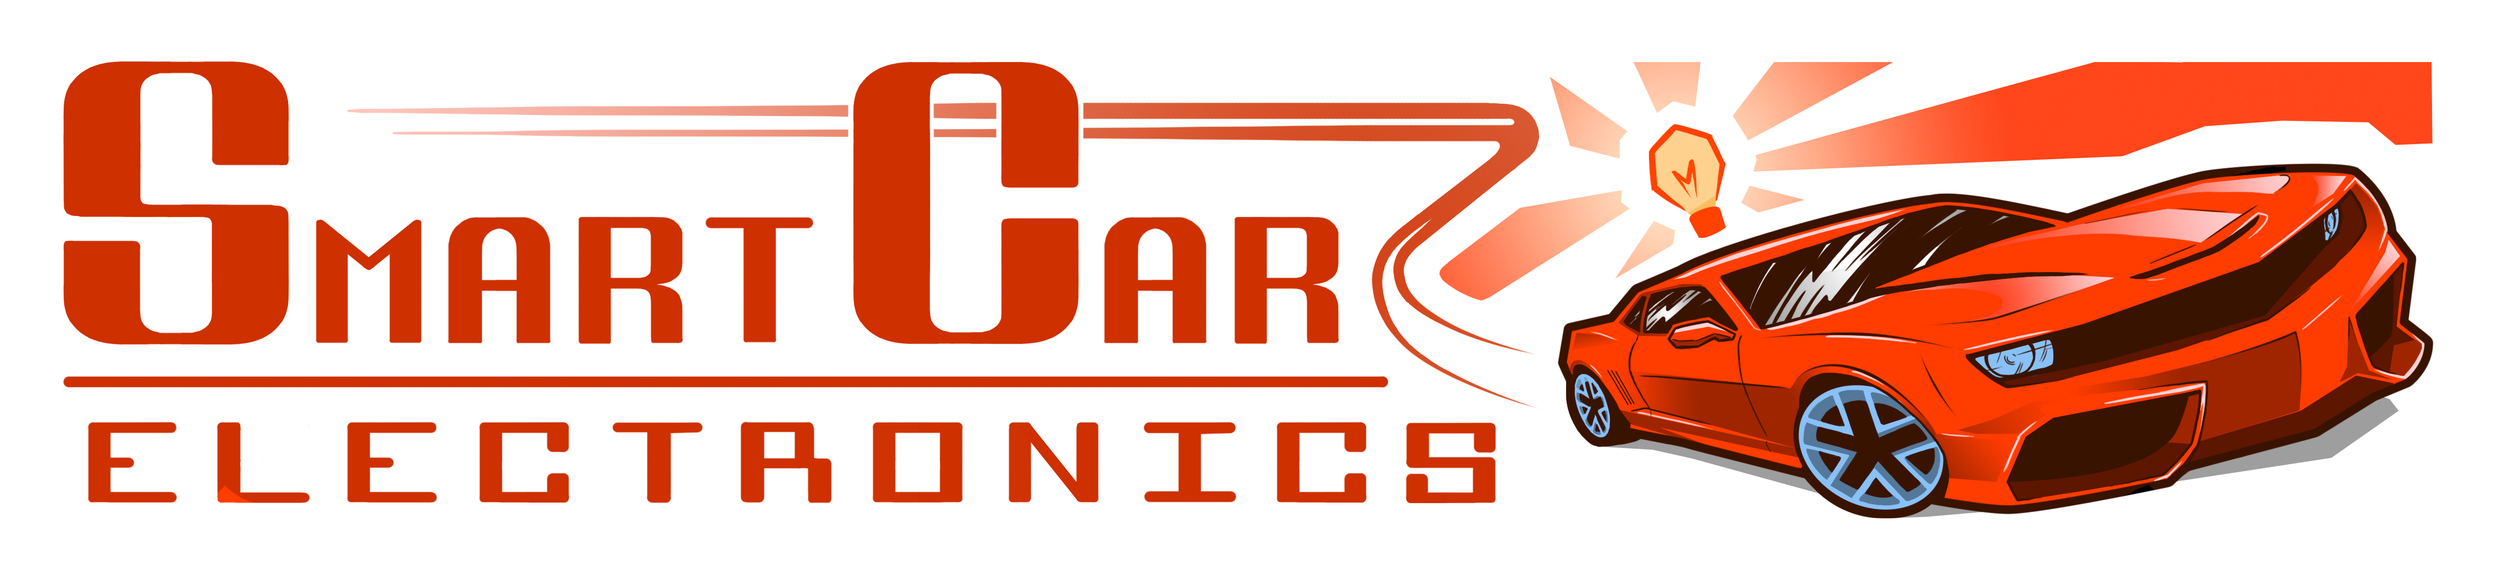 Smart Car Electronics Logo